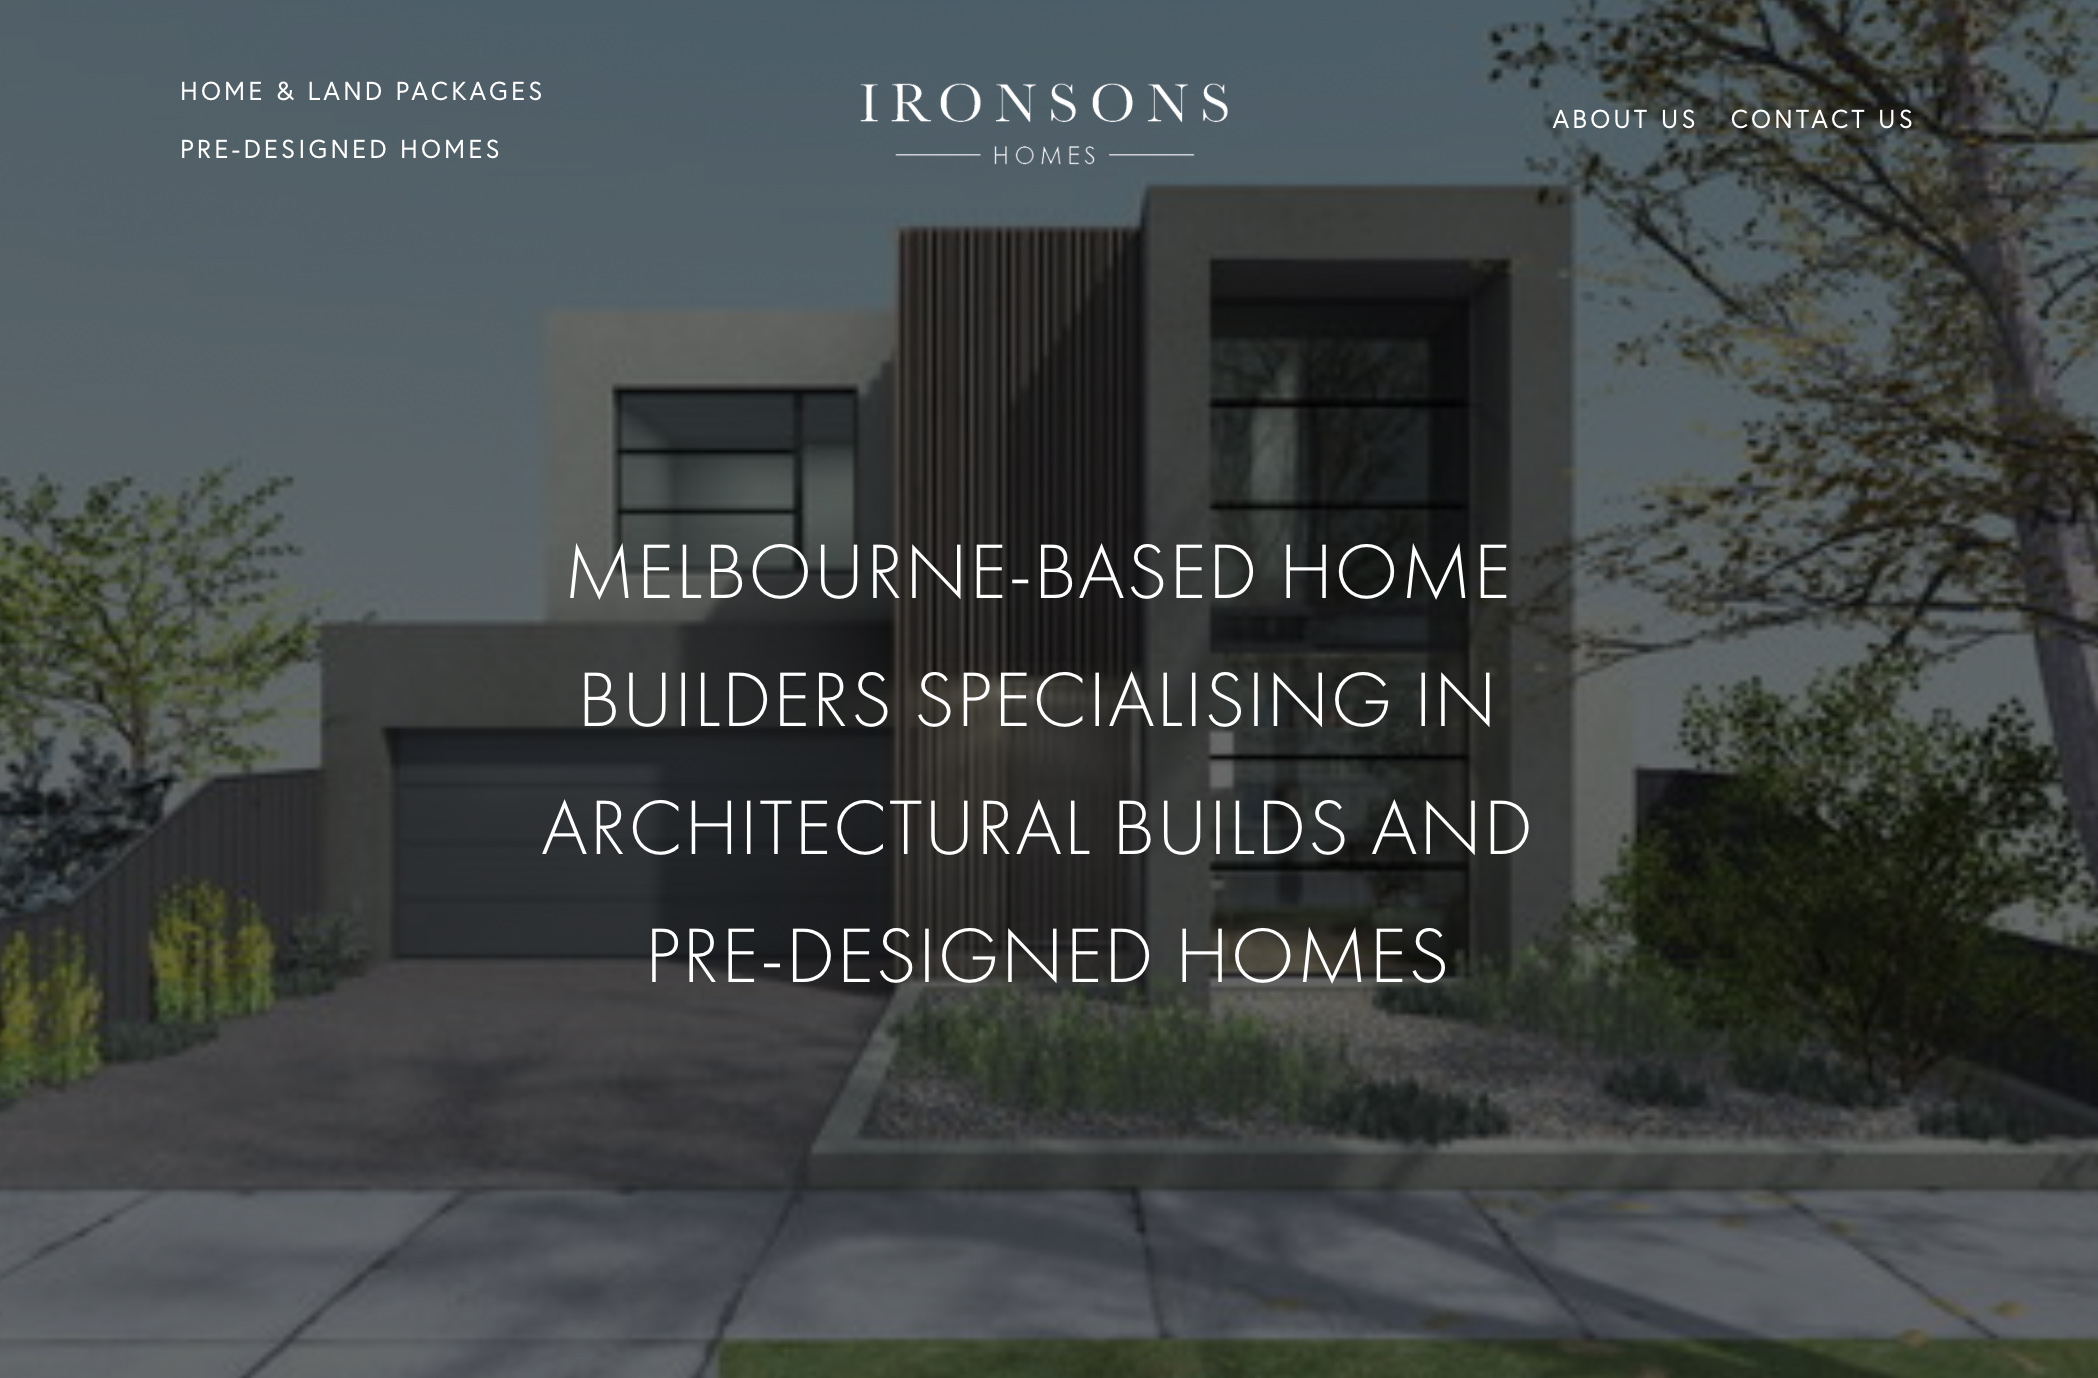 Ironsons-homes-example-voom-media-2.jpg